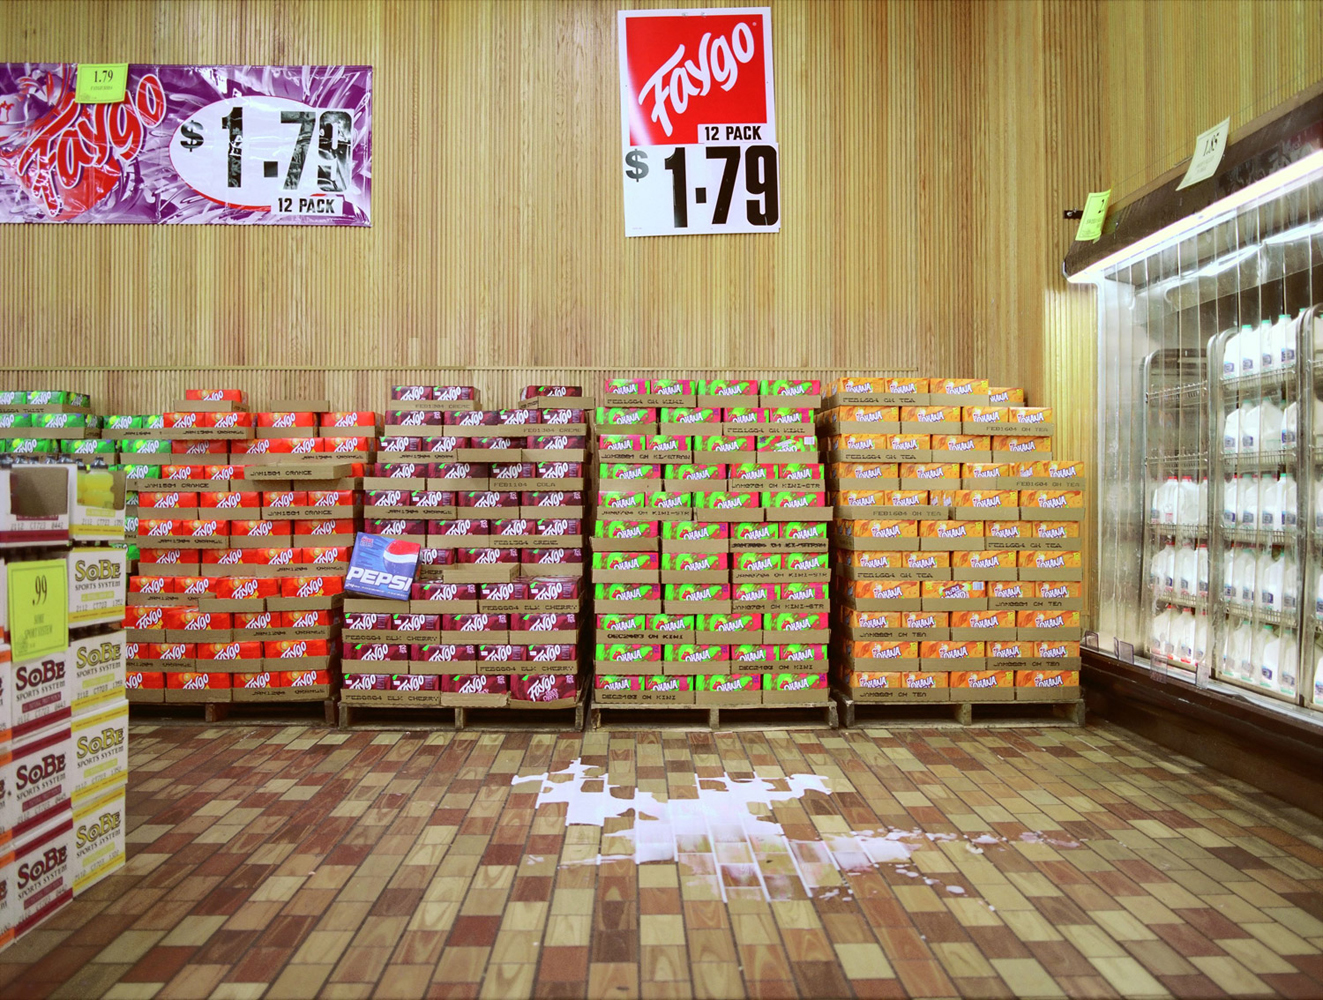 Kenosha WI, 2003                                The employee-run big box store Woodman's, in Wisconsin. I returned years later and asked to photograph with a large format camera. They were extremely accommodating and later one employee explained, 'Someone made a photograph of near the milk section which was printed in the Chicago Tribune.' I smirkingly did not explain I was the author, content in the fact that taking the photograph helped make the store a lot more lenient on their policy of photographing in the store.